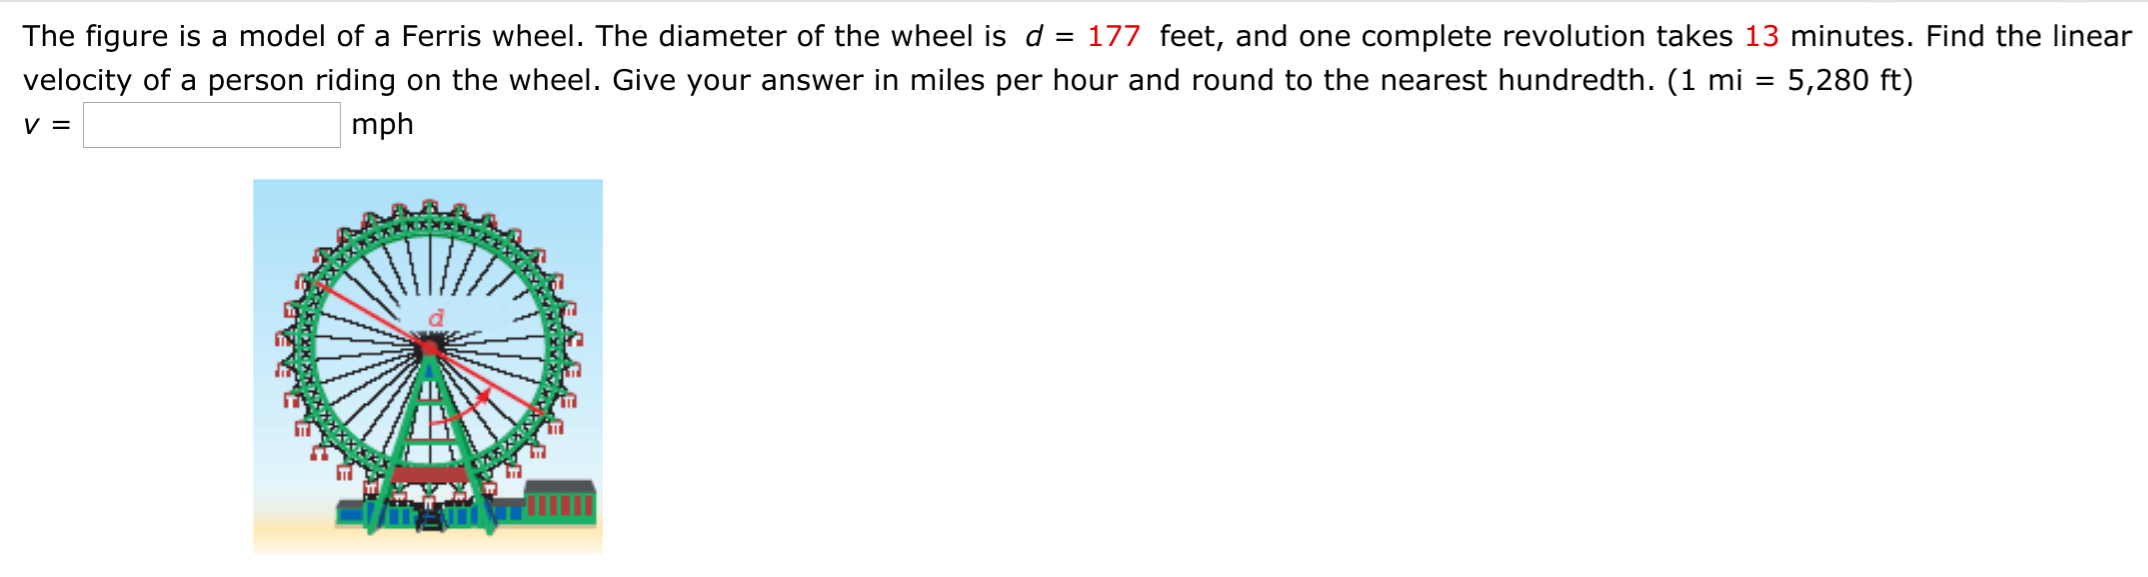 The figure is a model of a Ferris wheel. The diameter of the wheel is d = 177 feet, and one complete revolution takes 13 minutes. Find the linear velocity of a person riding on the wheel. Give your answer in miles per hour and round to the nearest hundredth. (1 mi = 5,280 ft) mph